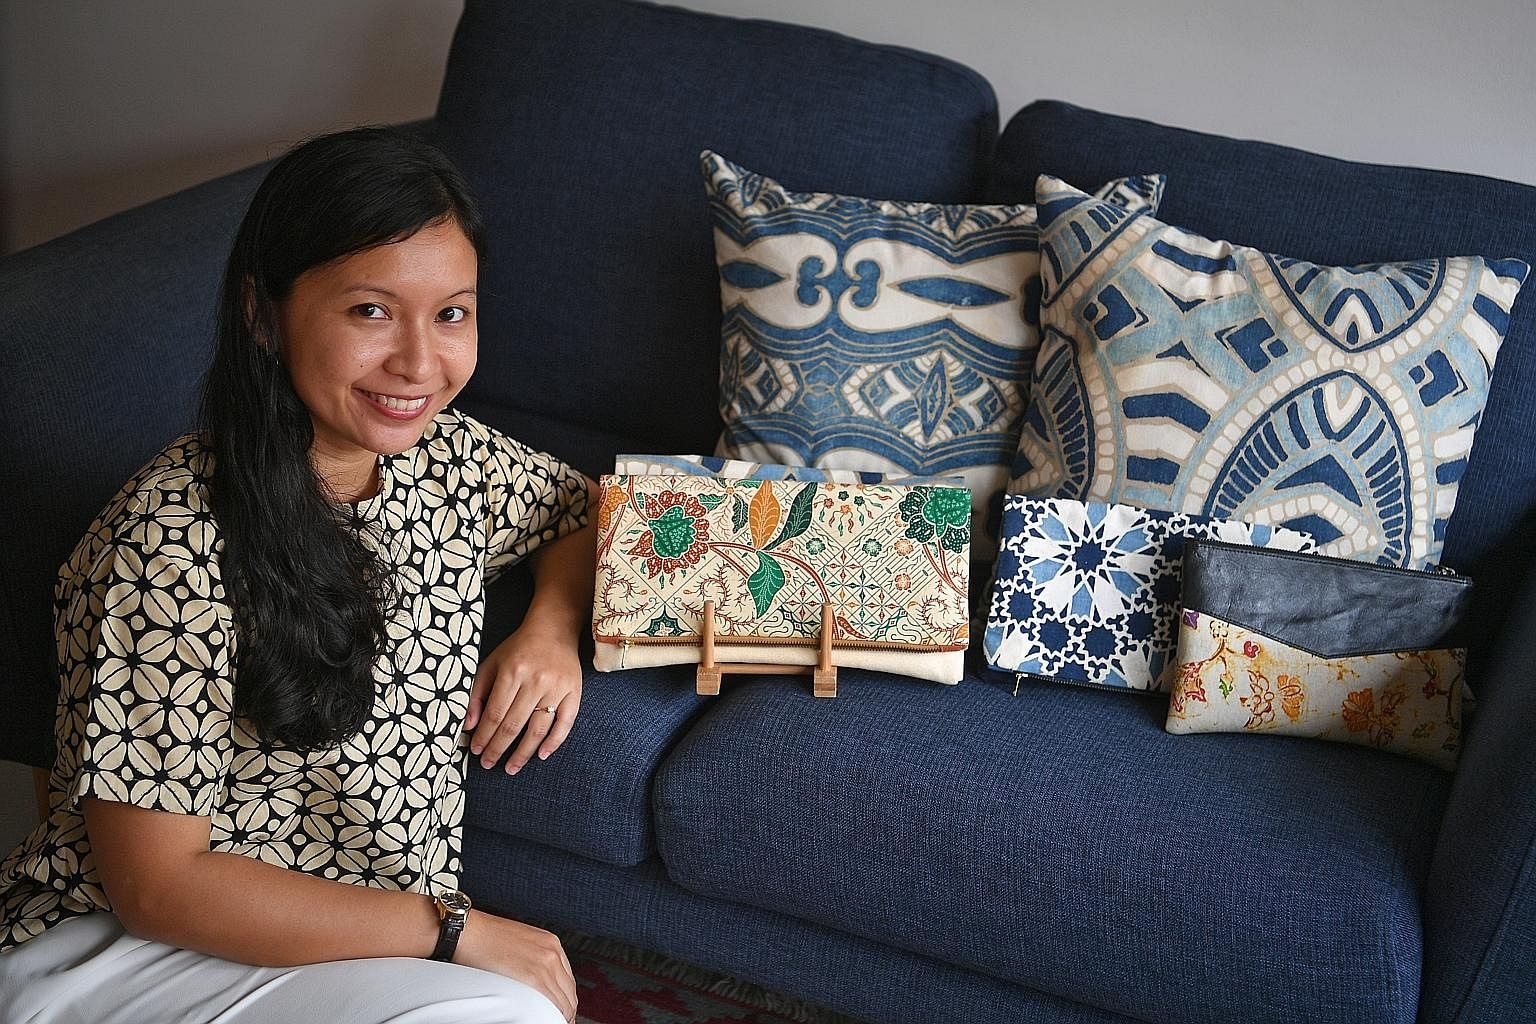 Ms Nur Aqilah Zailan designs and releases a new collection of batik clutches - her best-selling items - every two months under her label Gypsied. Each collection has up to 40 clutches.